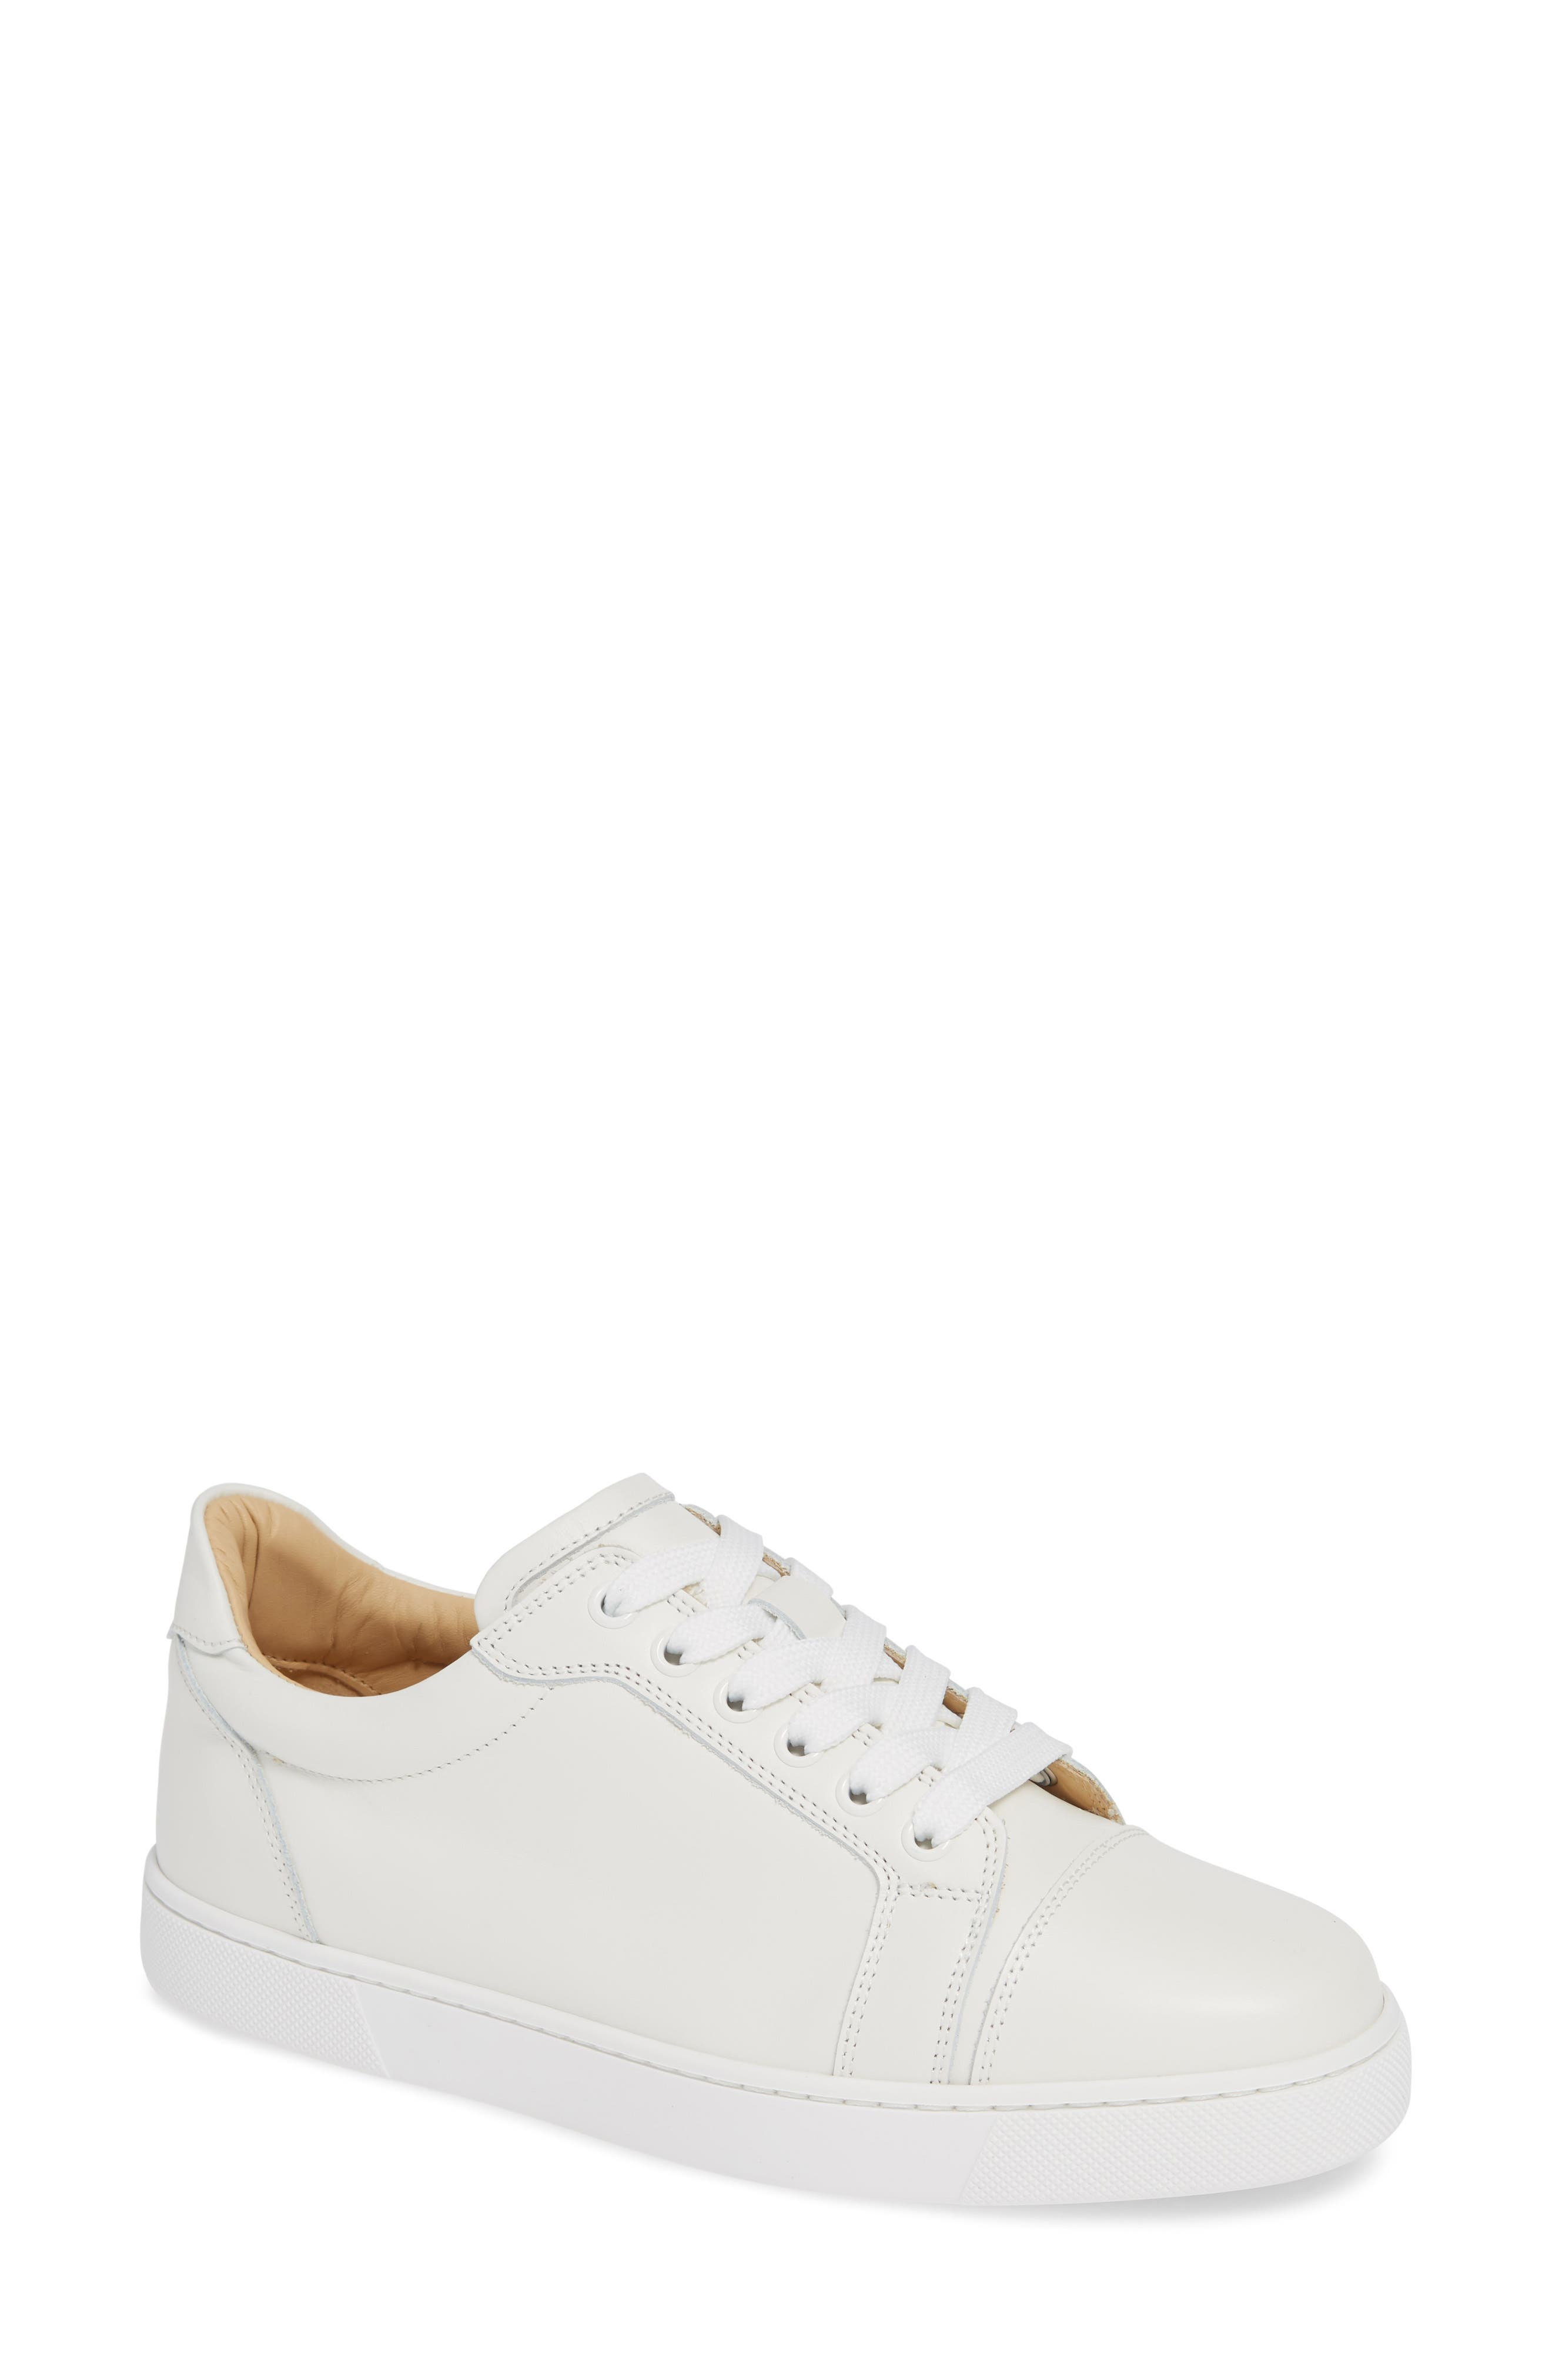 Veira Lace-Up Sneaker,                         Main,                         color, SNOW WHITE